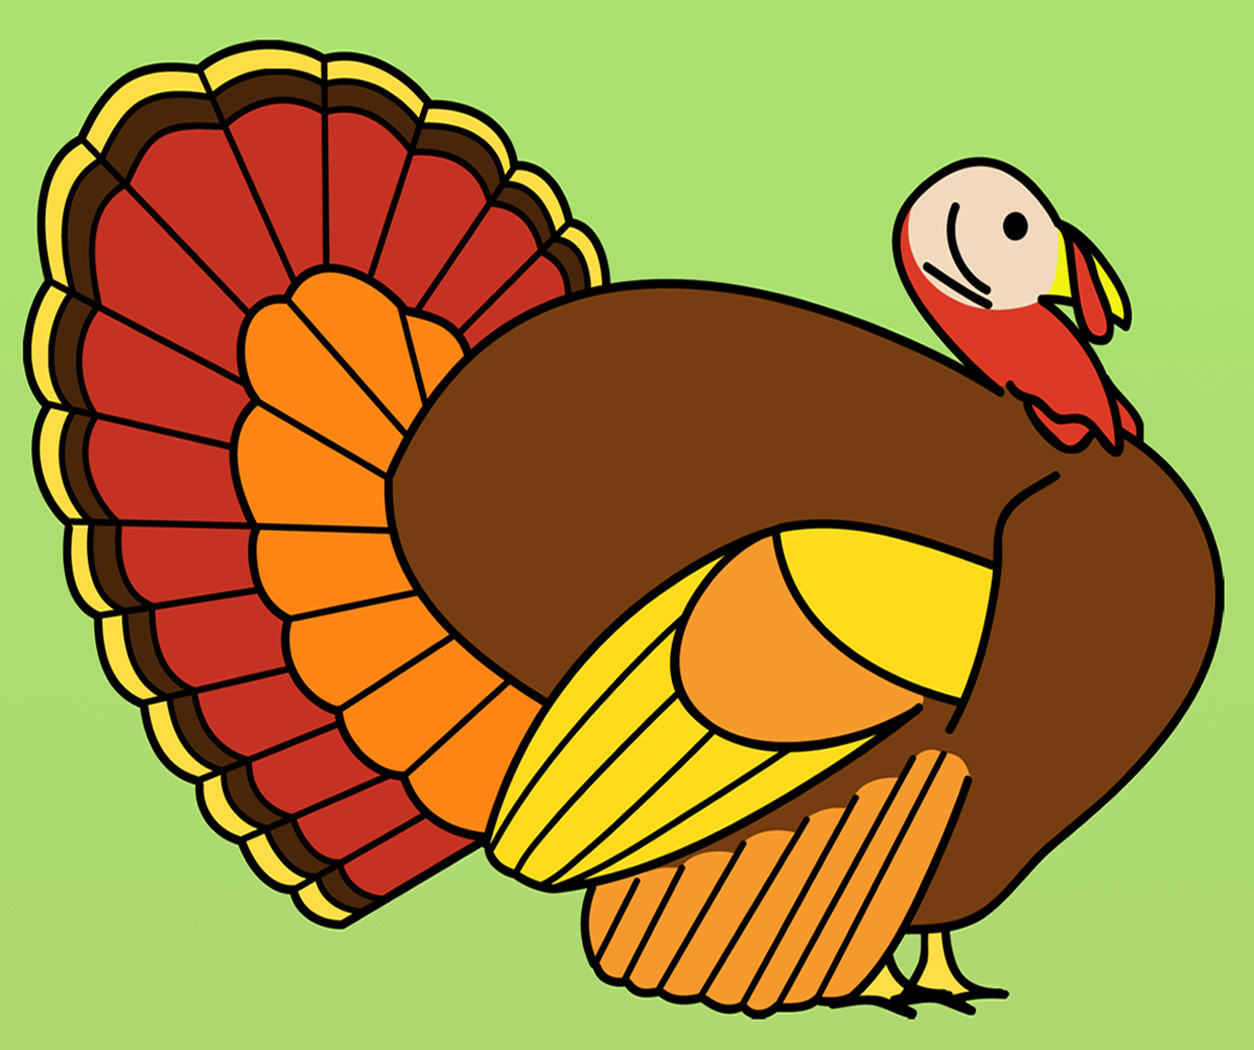 Thanksgiving Turkey Graphic  Clip Art Turkey Dinner B&W Thanksgiving Holiday